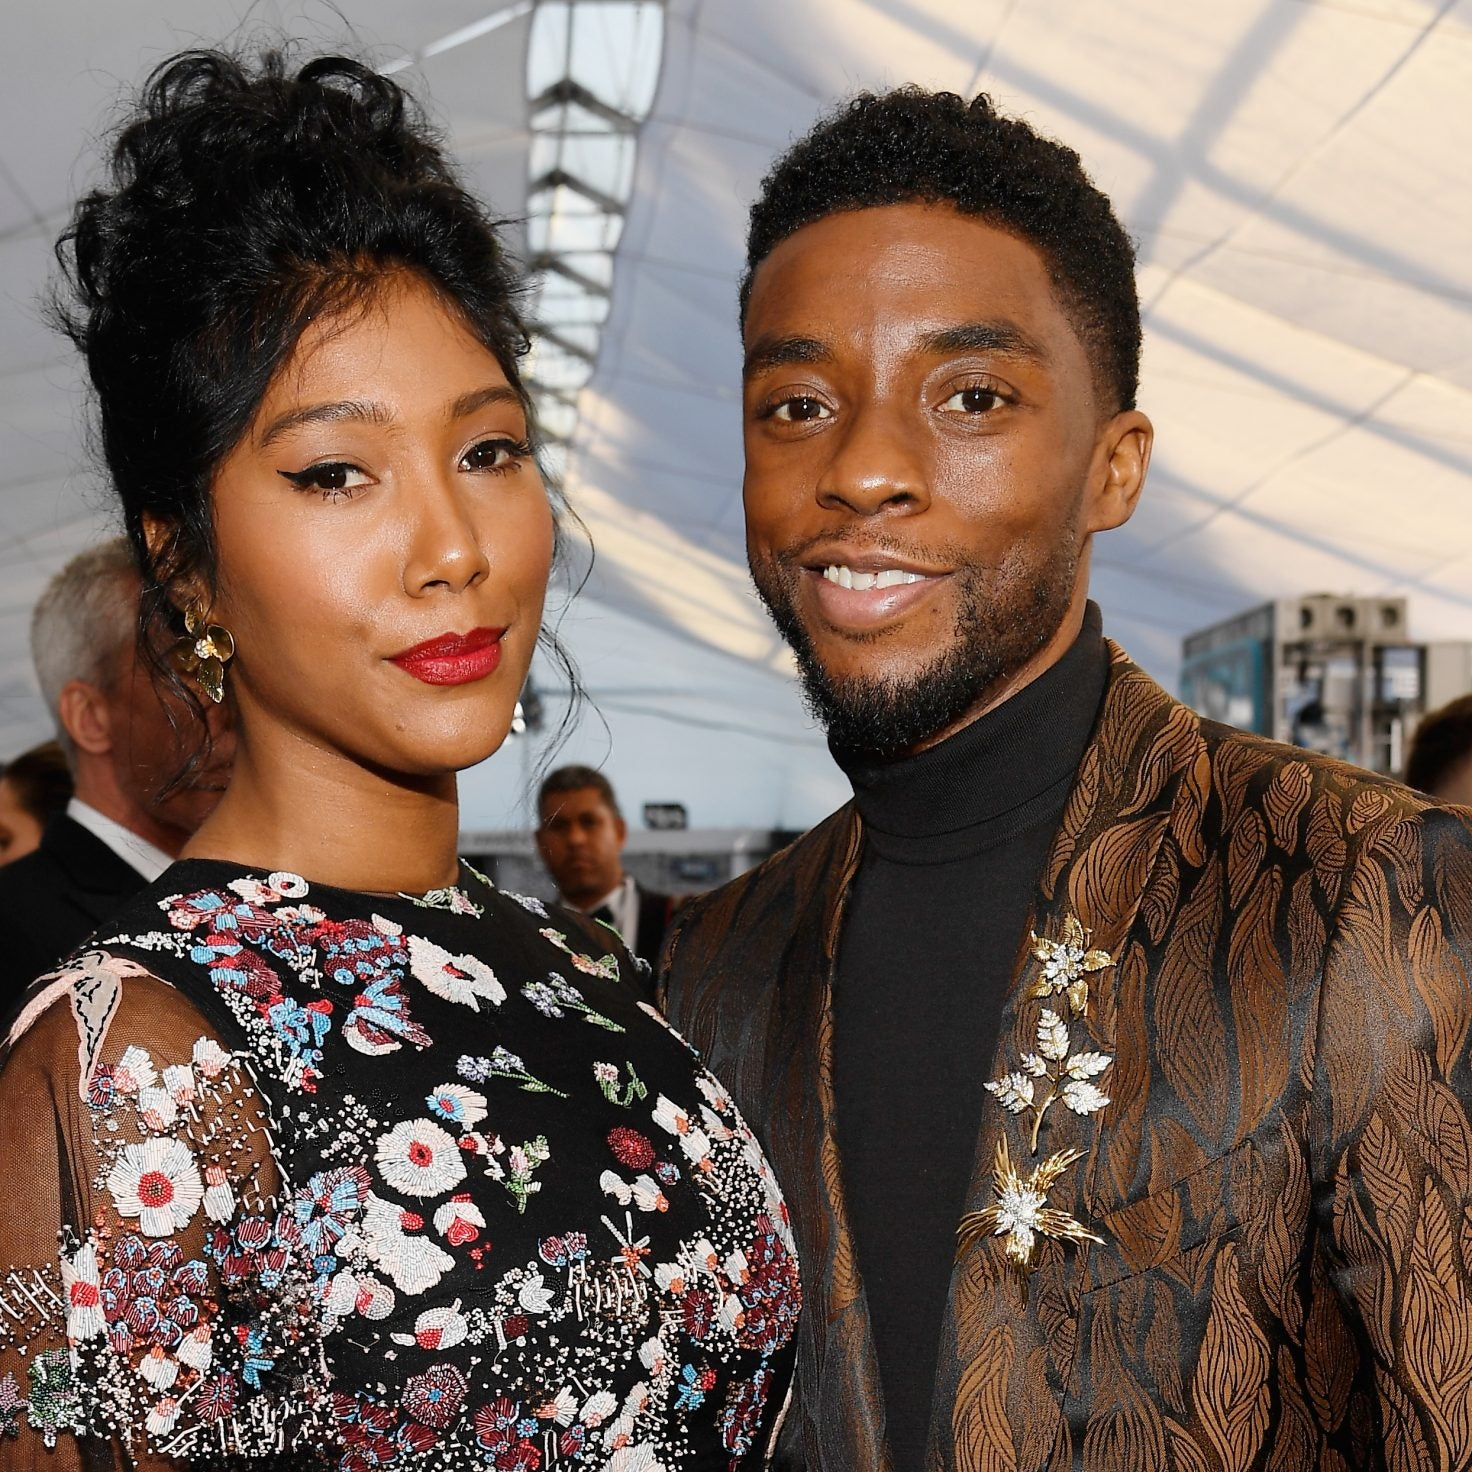 What We Know About Chadwick Boseman And Taylor Simone Ledward's Love Story